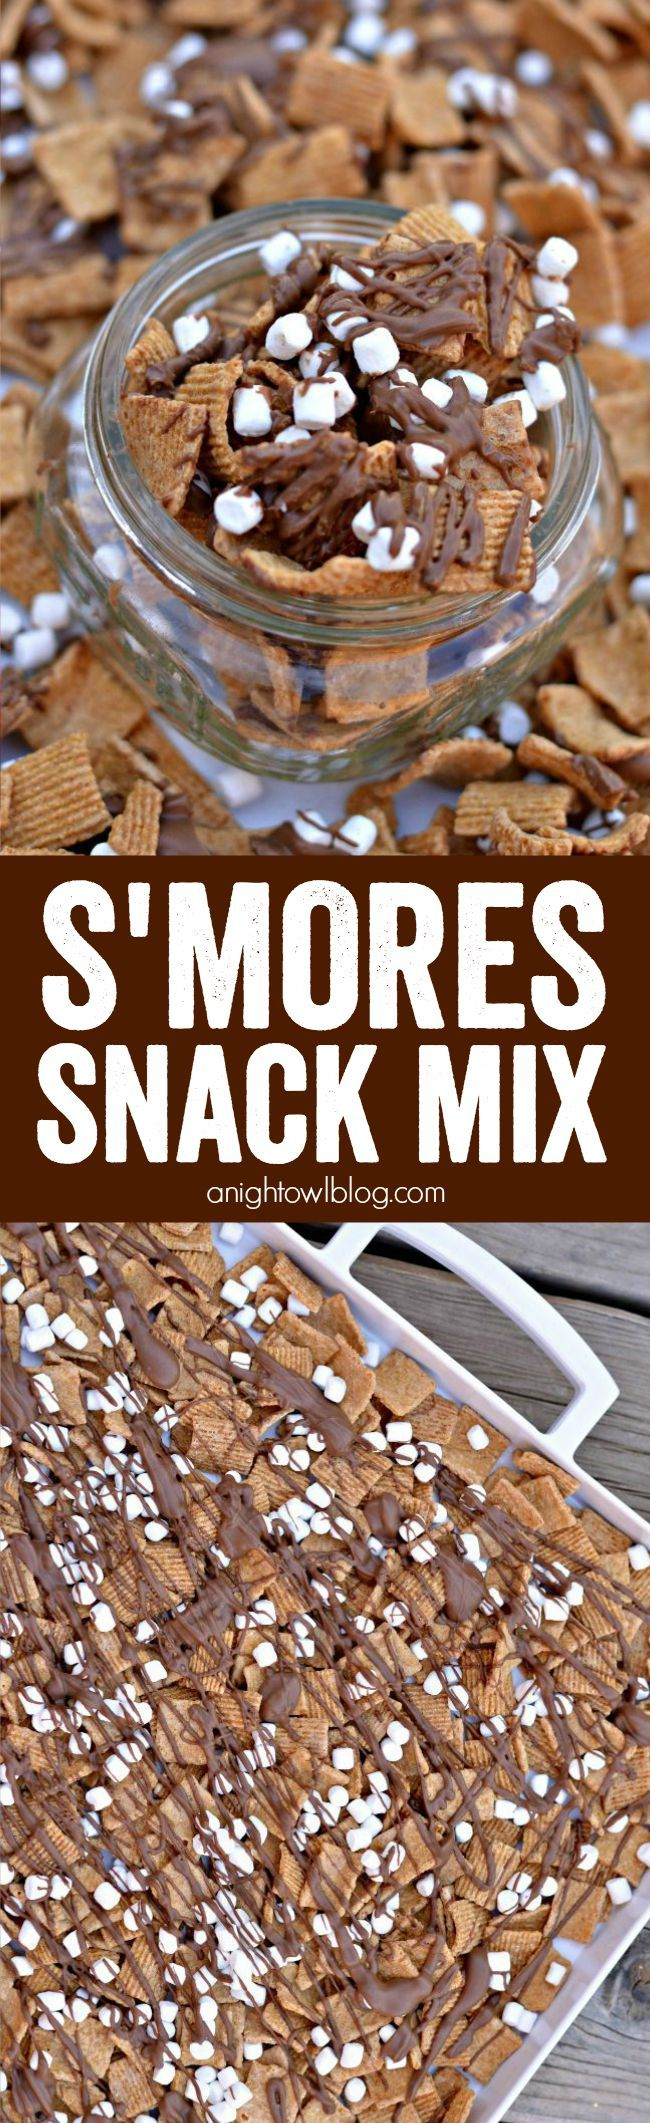 S'mores Snack Mix Recipe Snack mix, Winter snack, Snacks